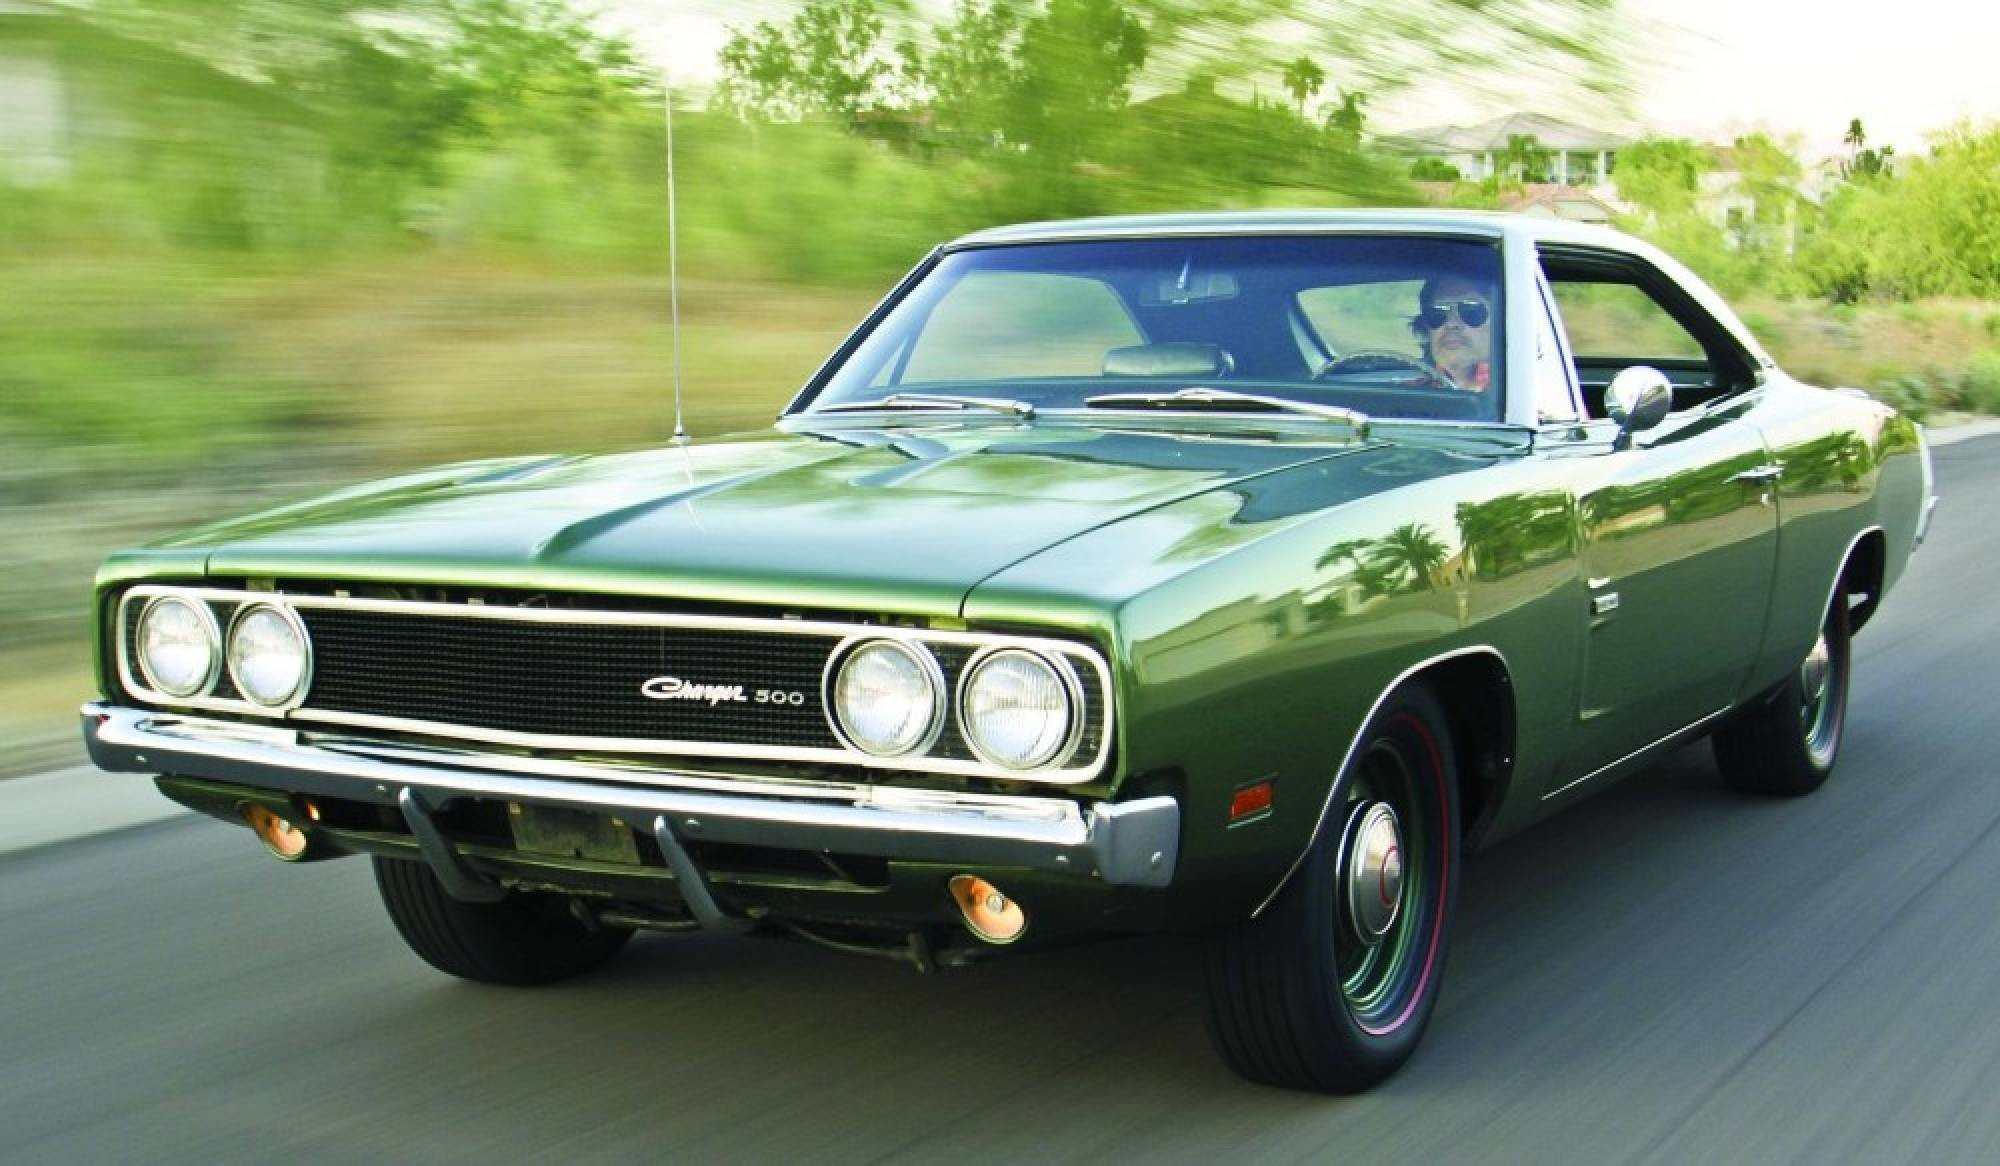 69 Dodge Charger Wallpapers 65 Background Pictures